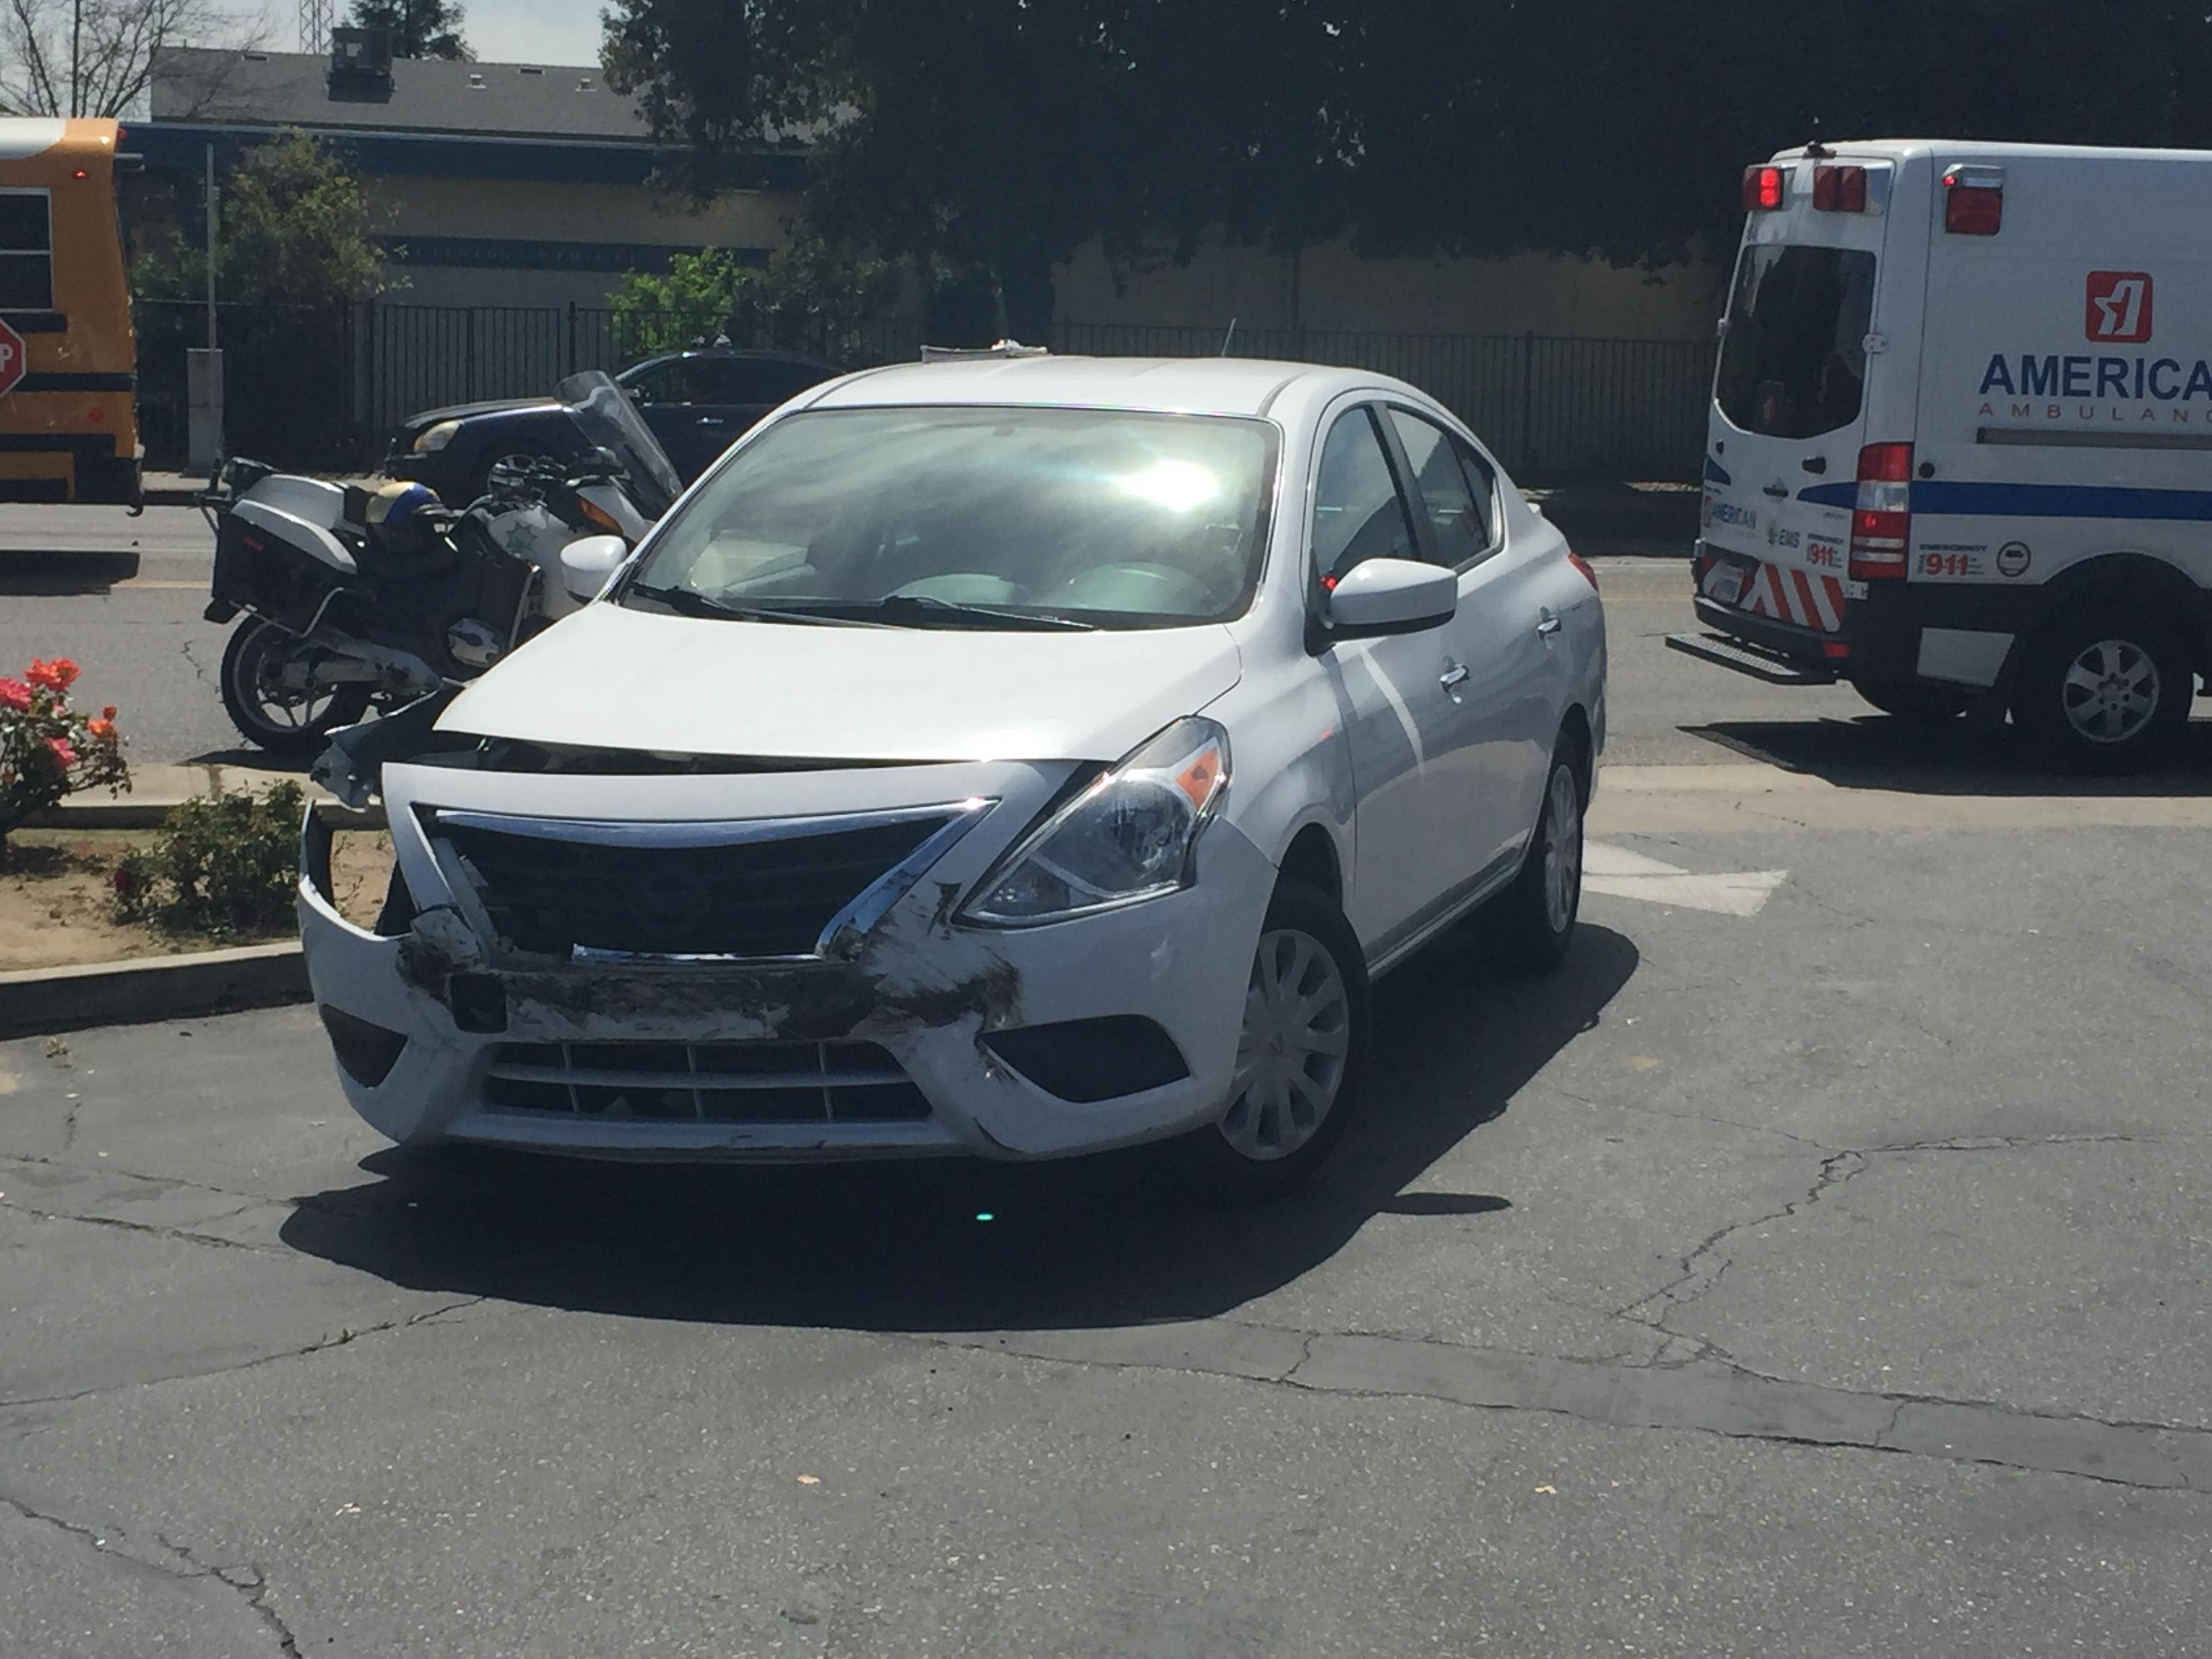 2-car crash at Clinton & Maple in Fresno (FOX26)